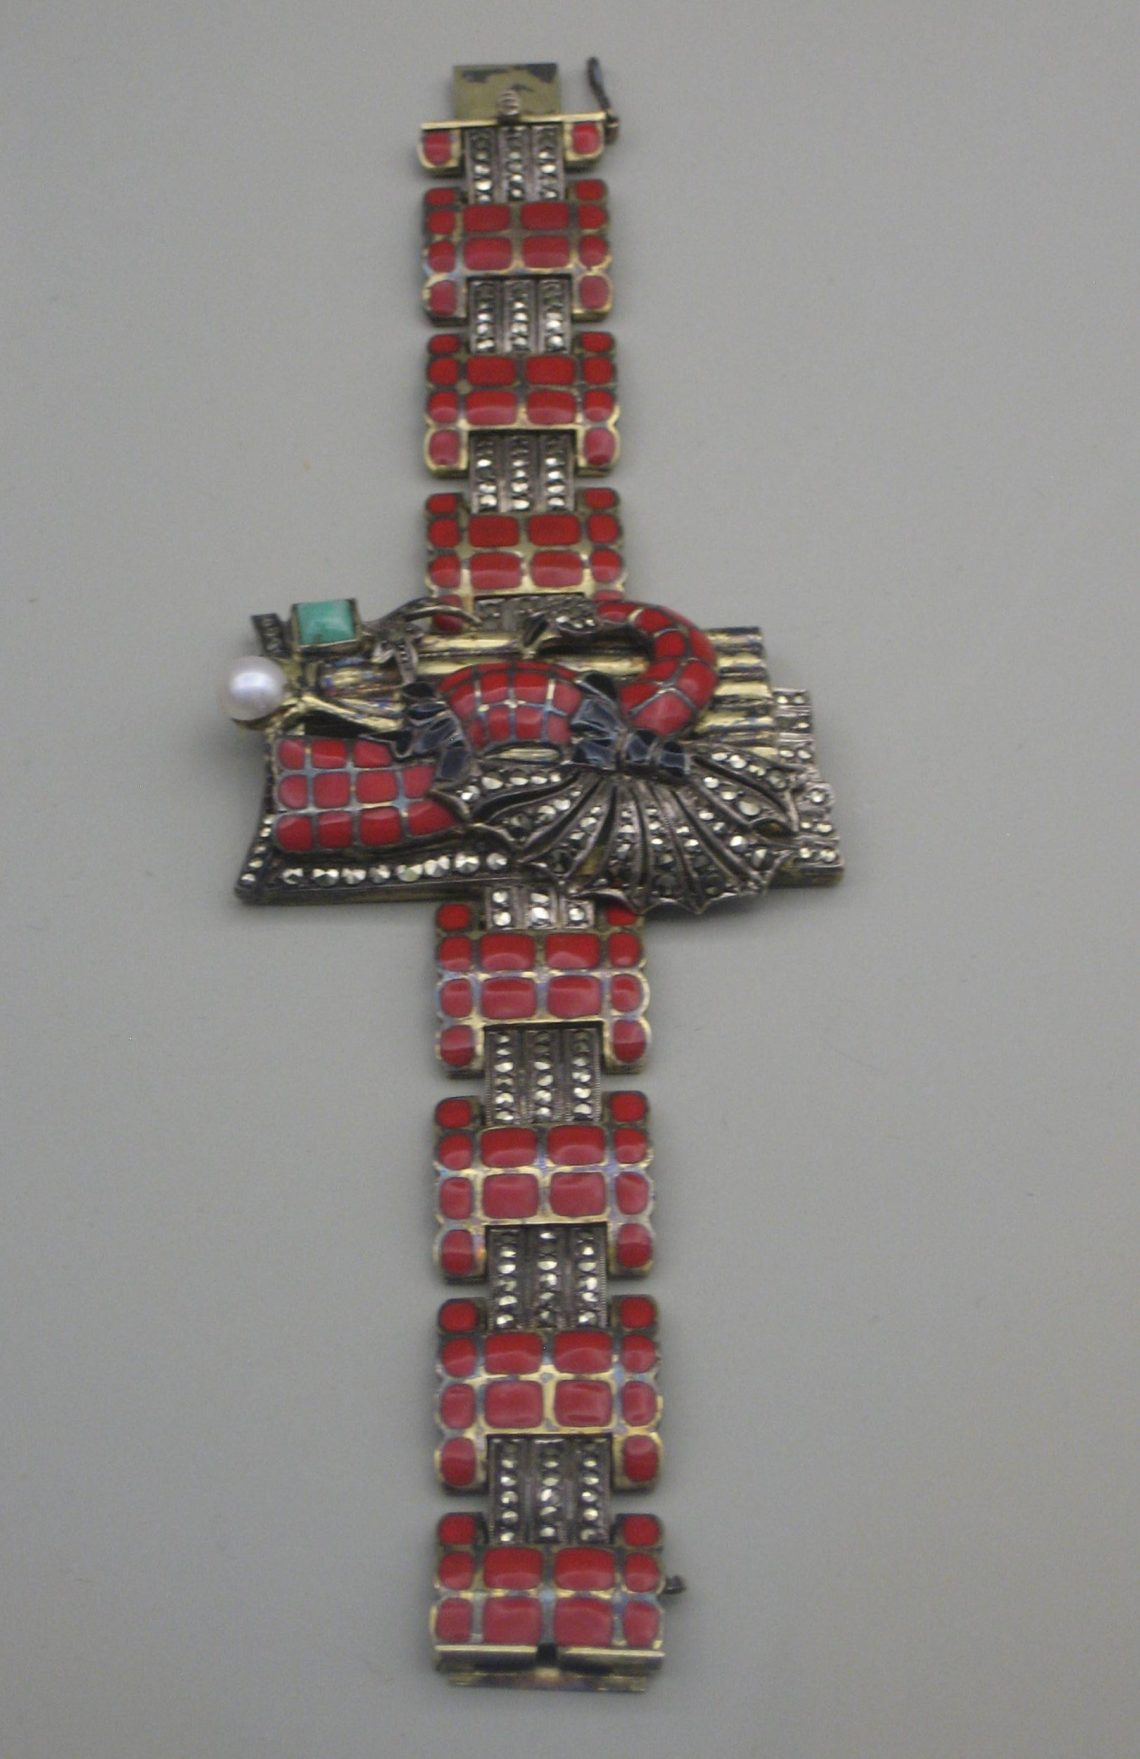 Gustave Braendle en Theodor Fahrner, armband, 1926. Collectie Grassimuseum. Foto Esther Doornbusch, CC BY 4.0